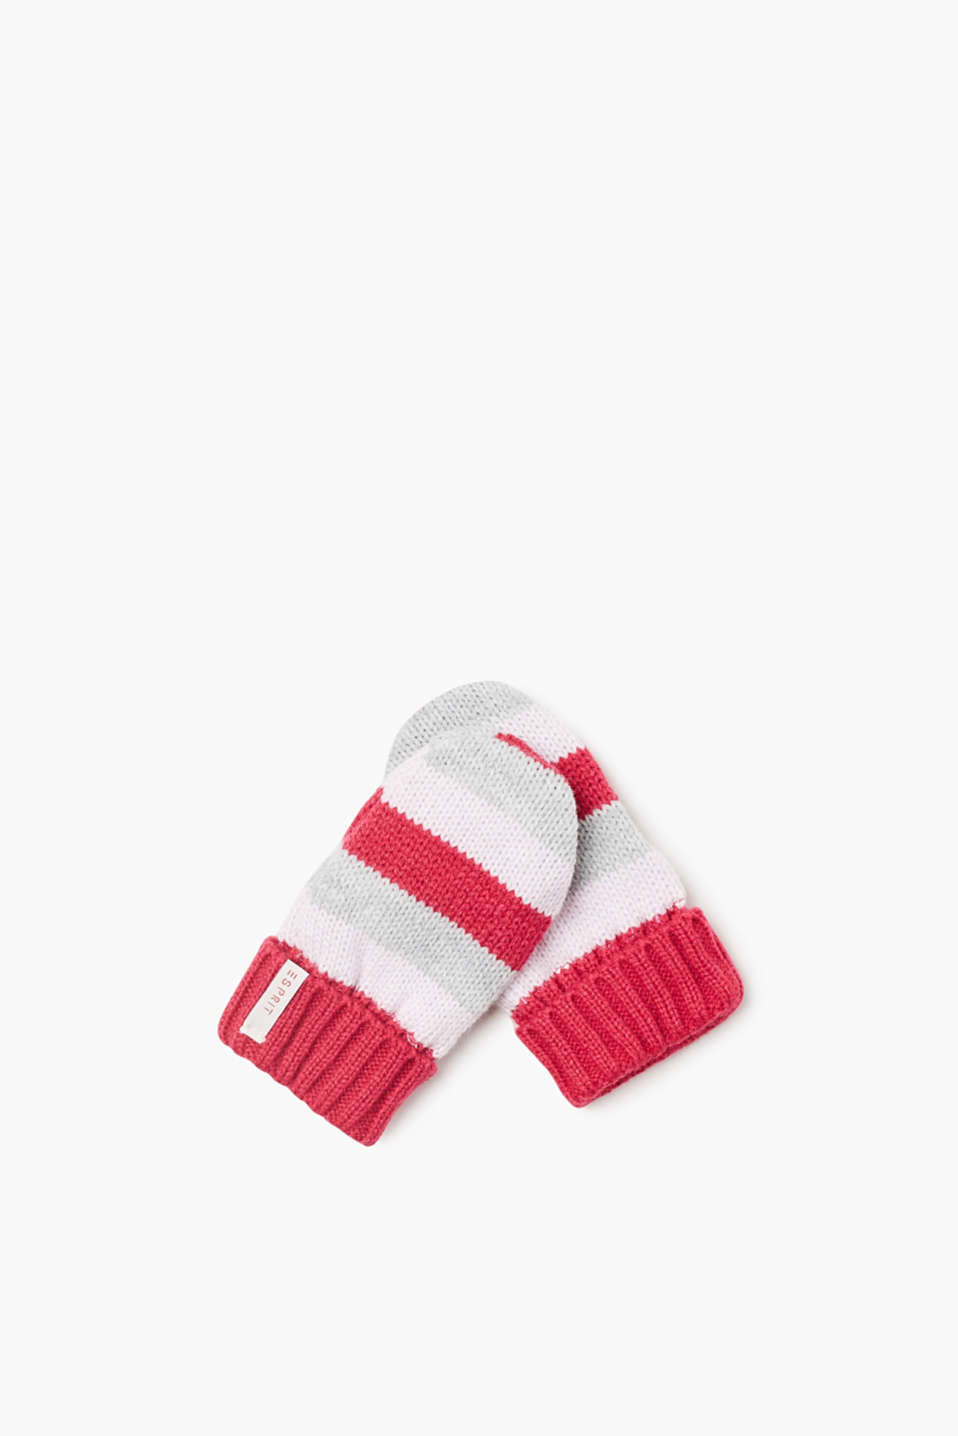 Cheerful striped mittens in a soft knit yarn with a jersey lining